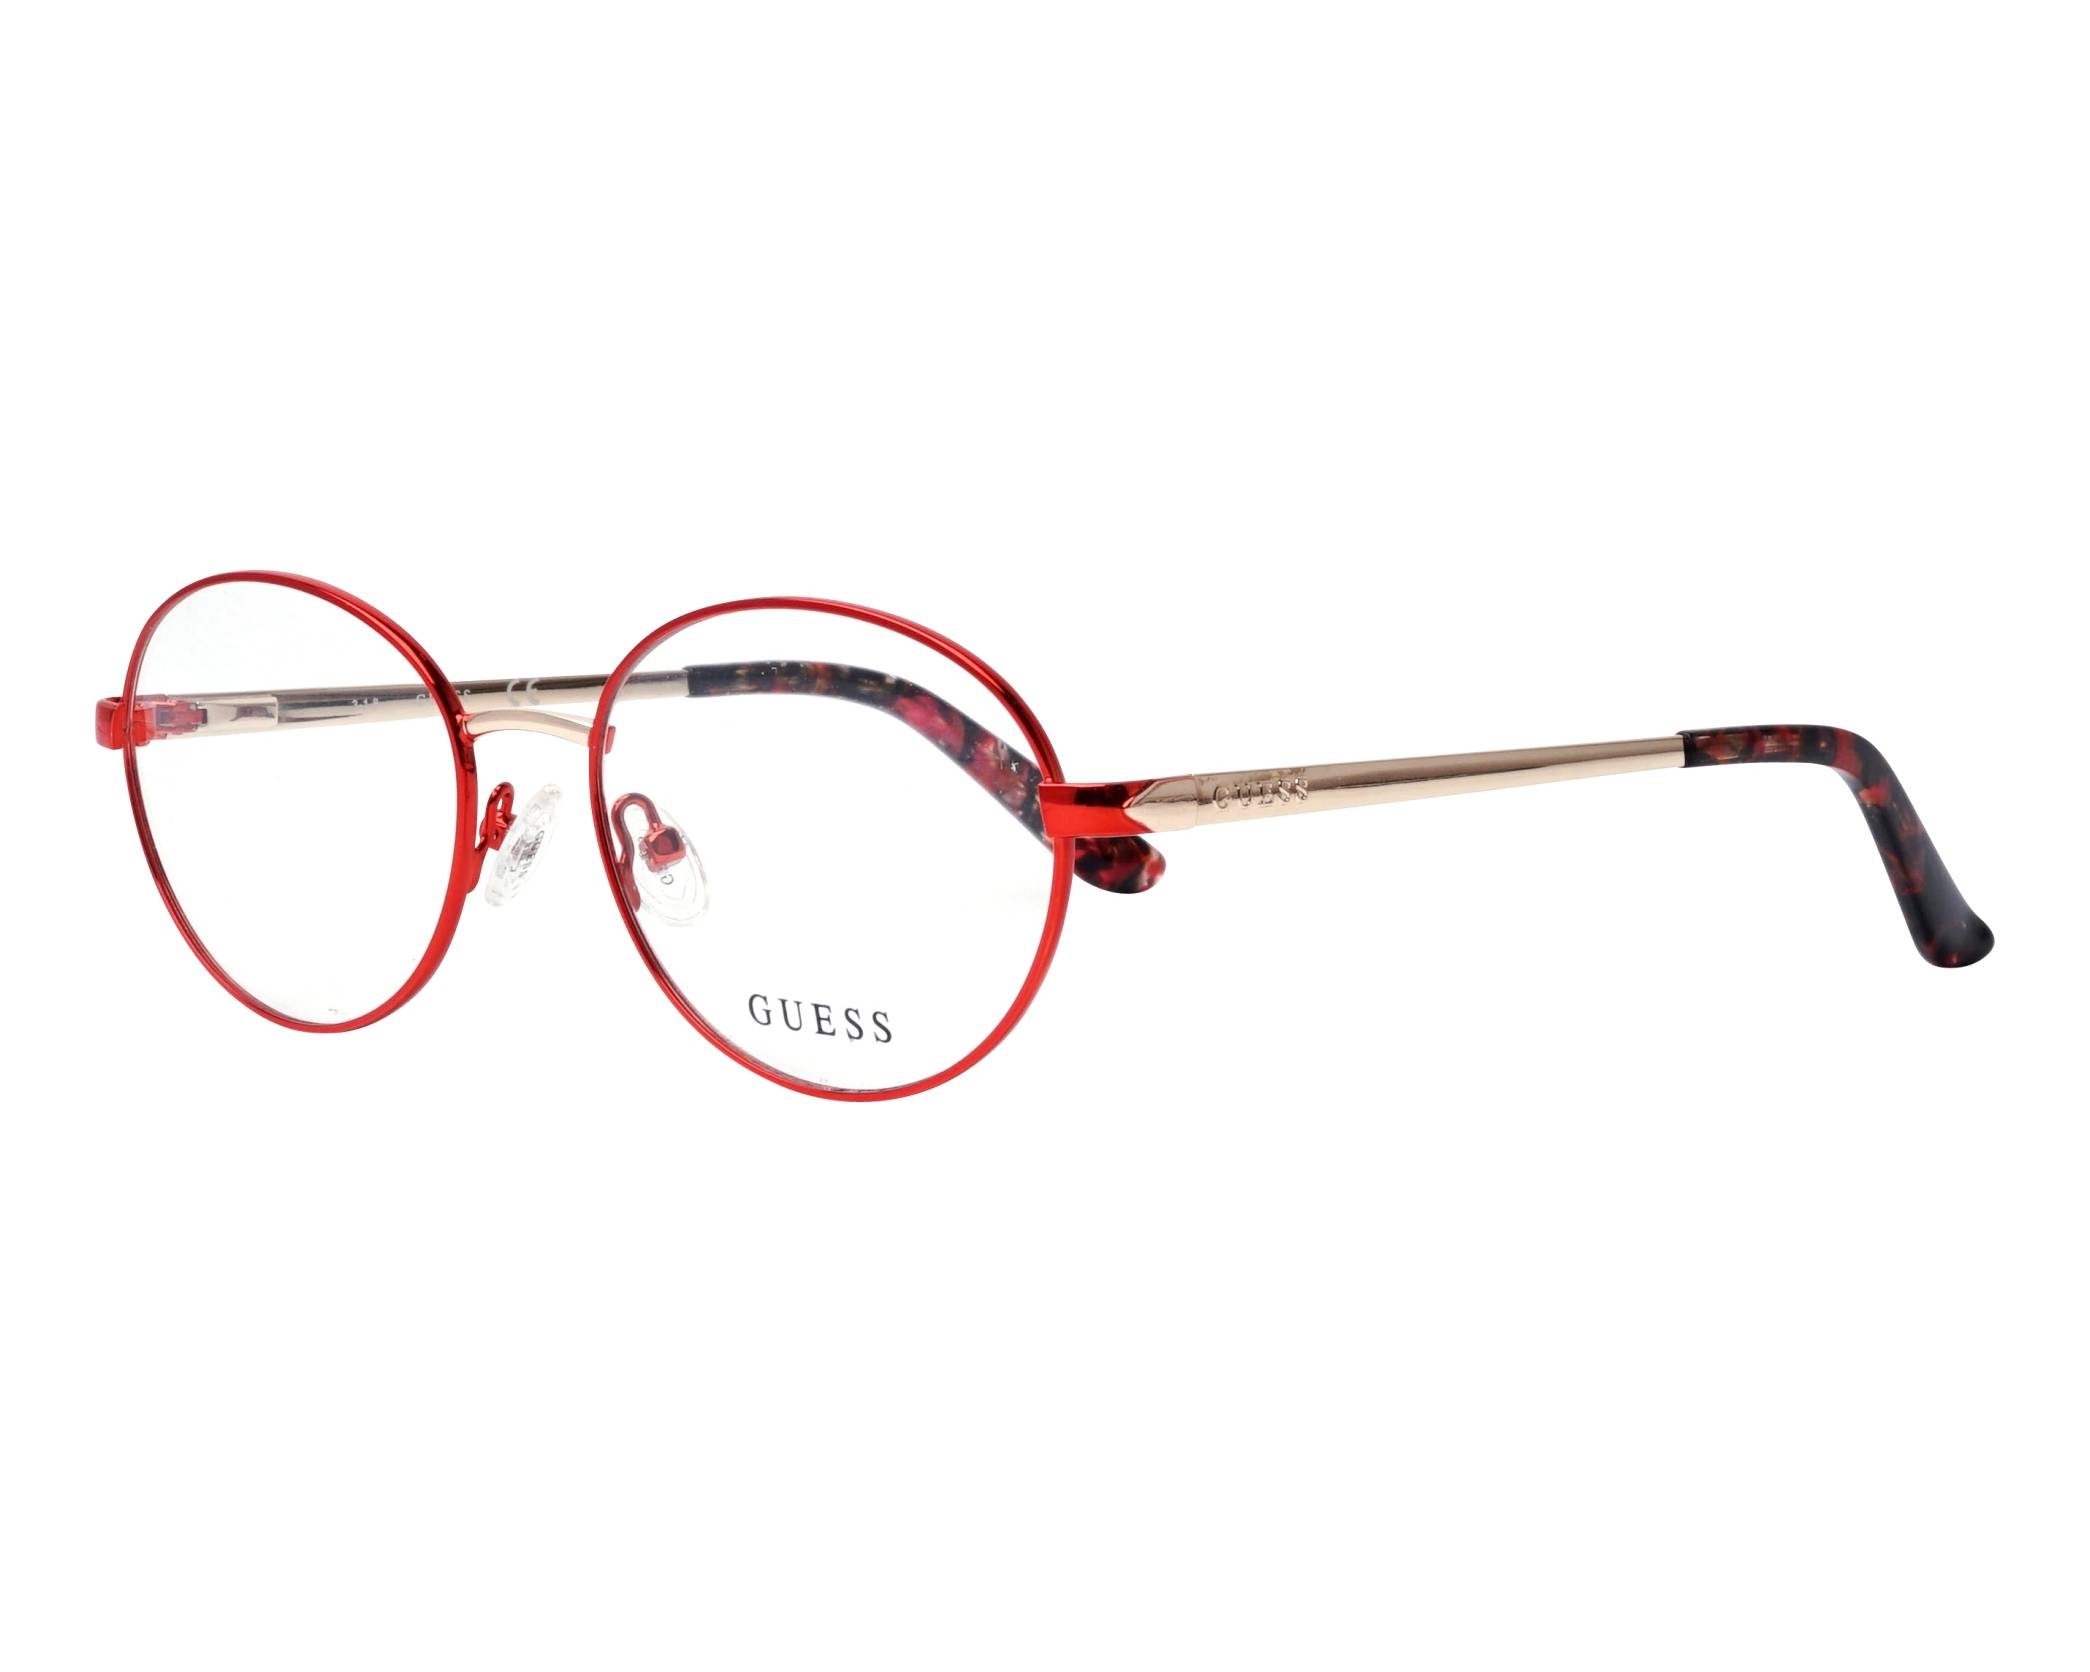 eyeglasses Guess GU-2713-V 069 52-17 Red Gold profile view